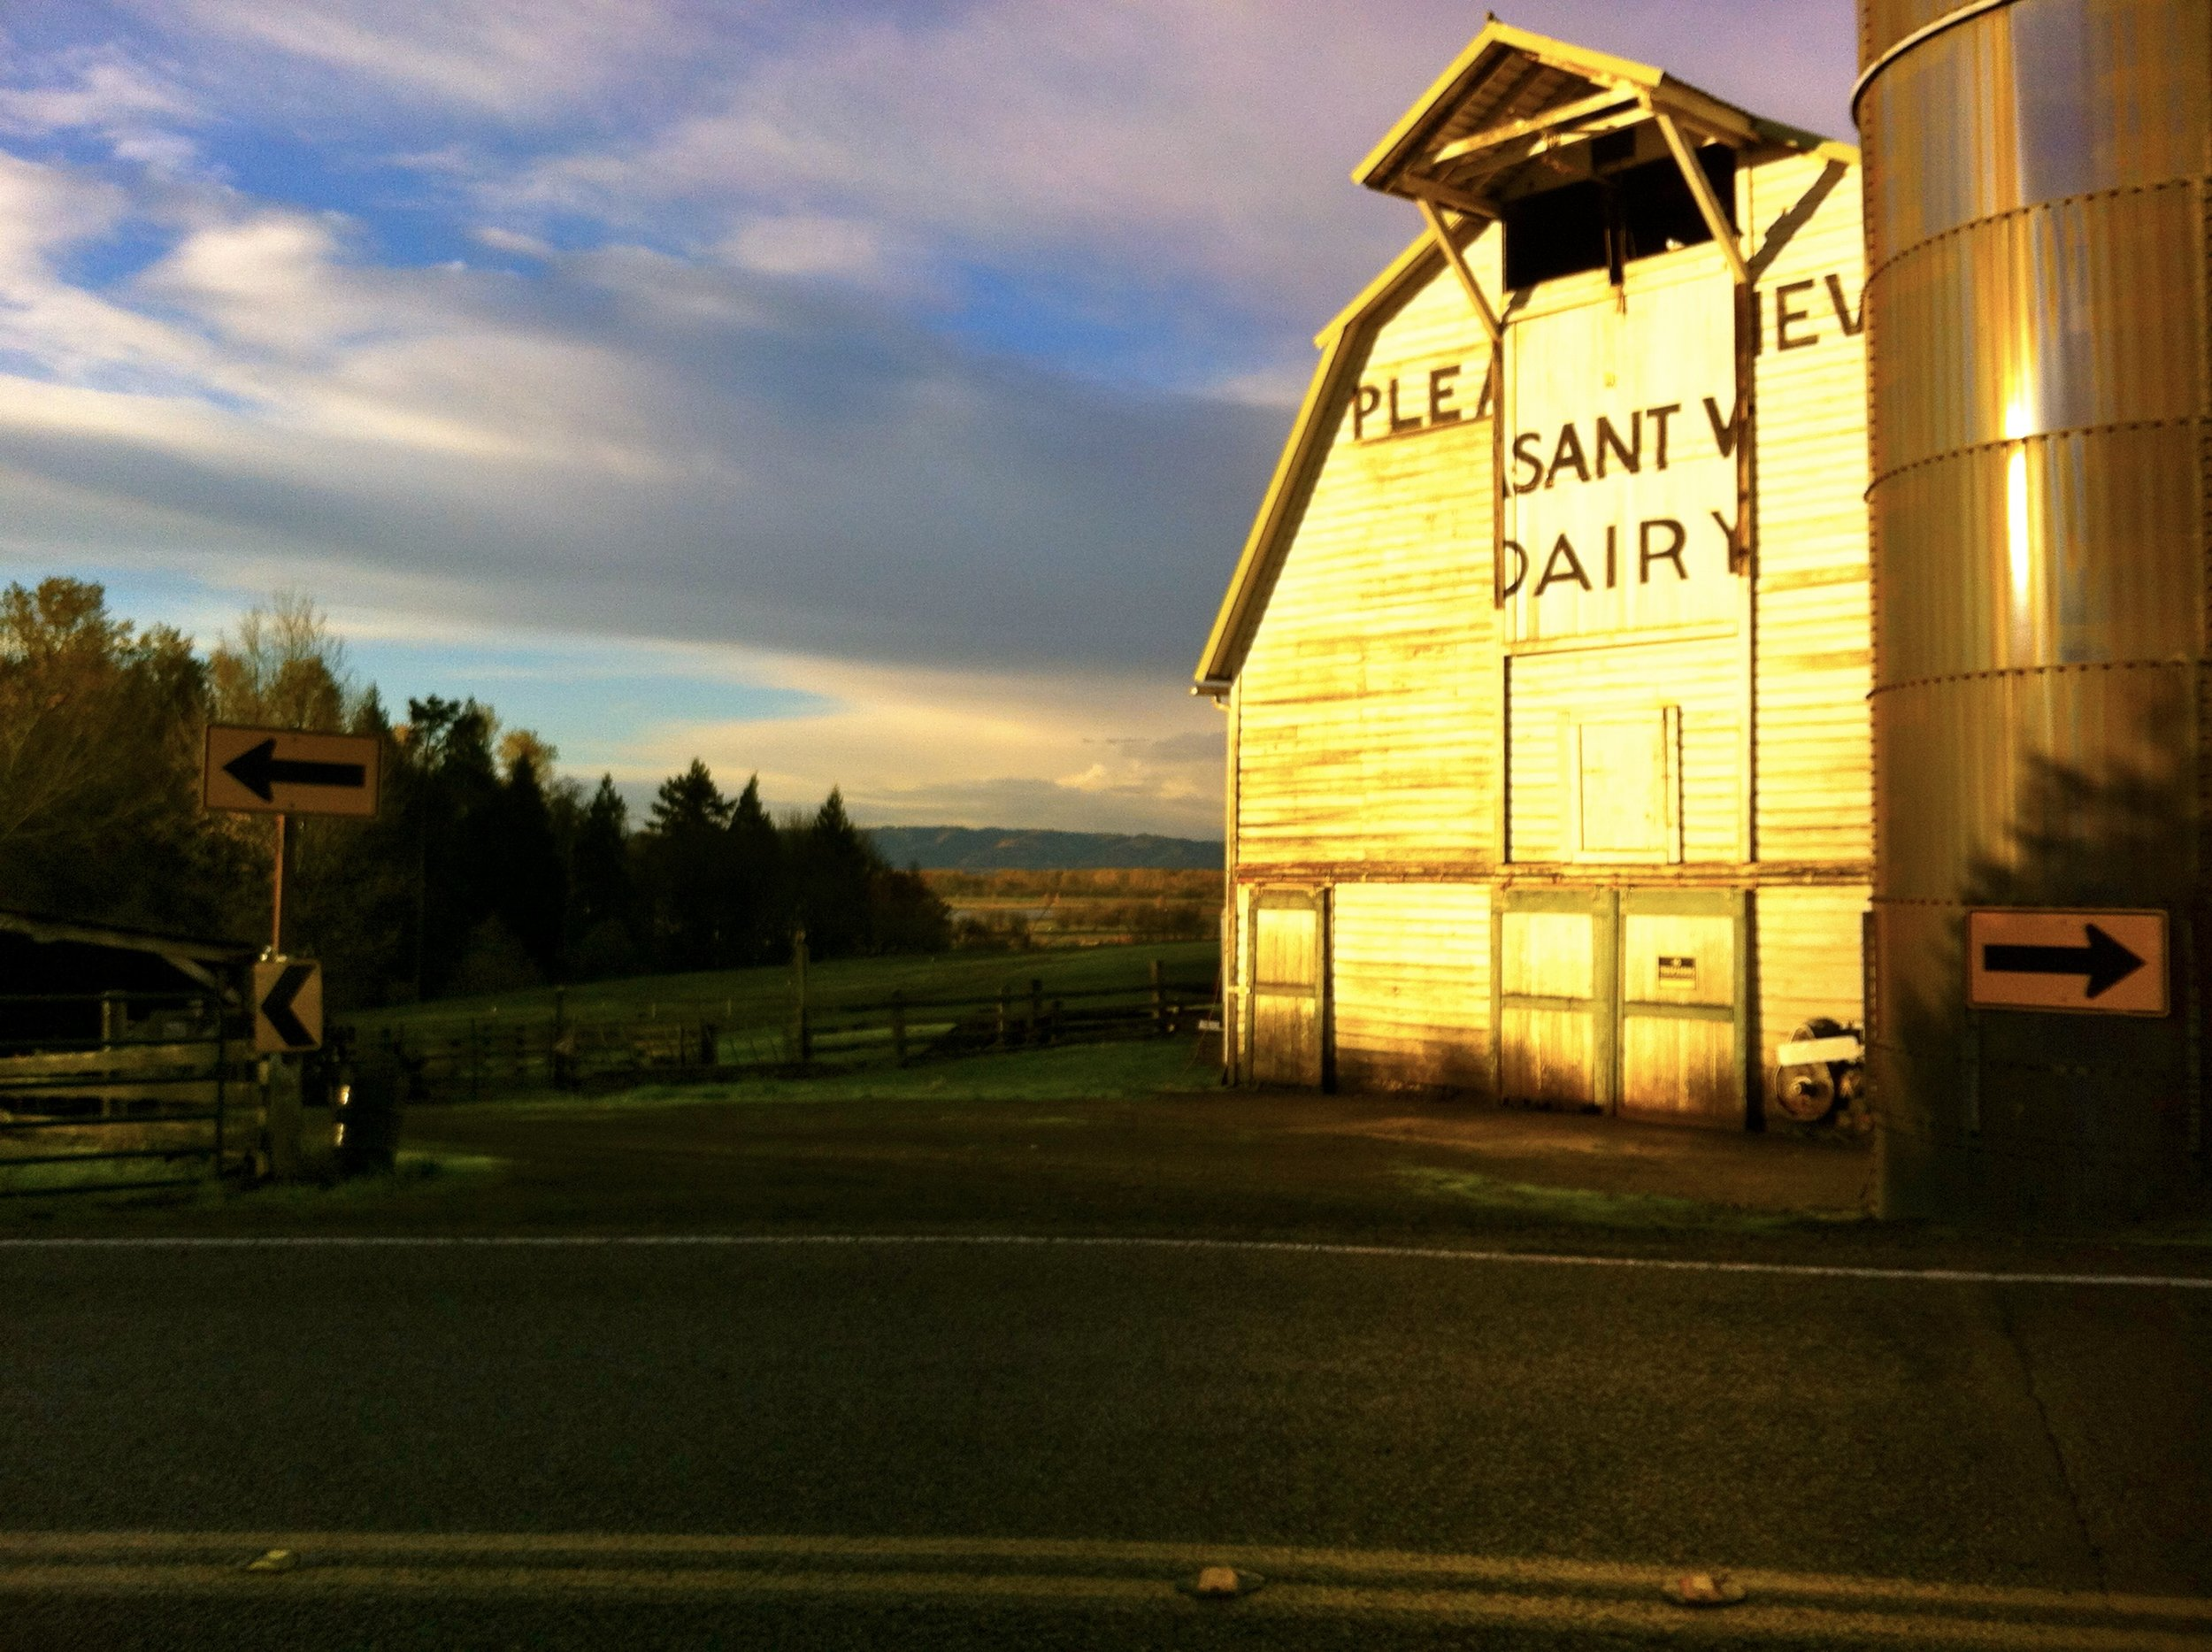 One morning I took this stunner of a photo. MAN I'll miss this old barn.